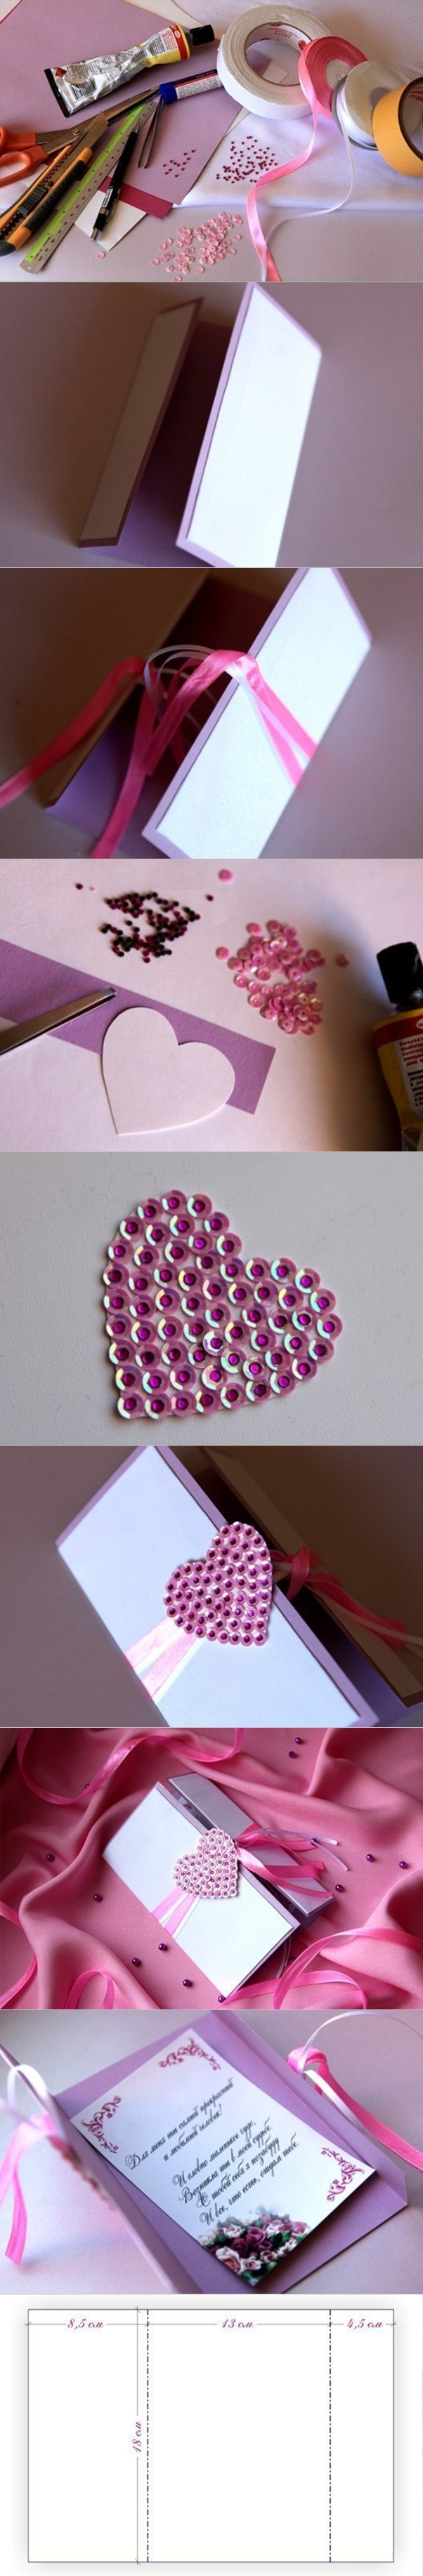 Greeting card with bling tutorials.jpg